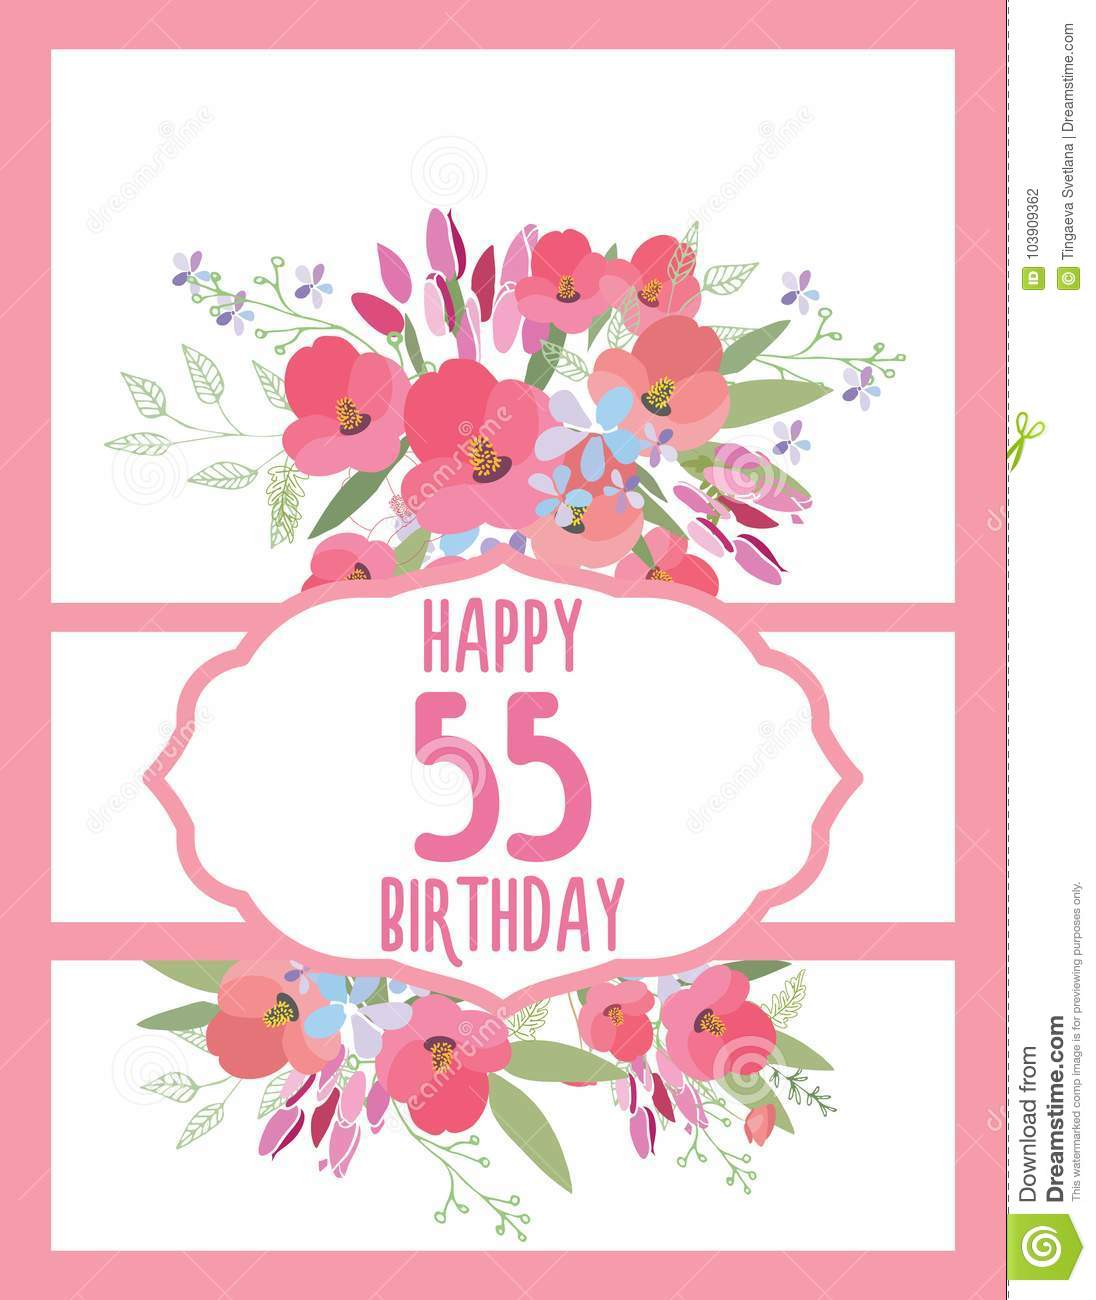 Greeting card for anniversary birthday stock vector illustration download greeting card for anniversary birthday stock vector illustration of flower postcard 103909362 izmirmasajfo